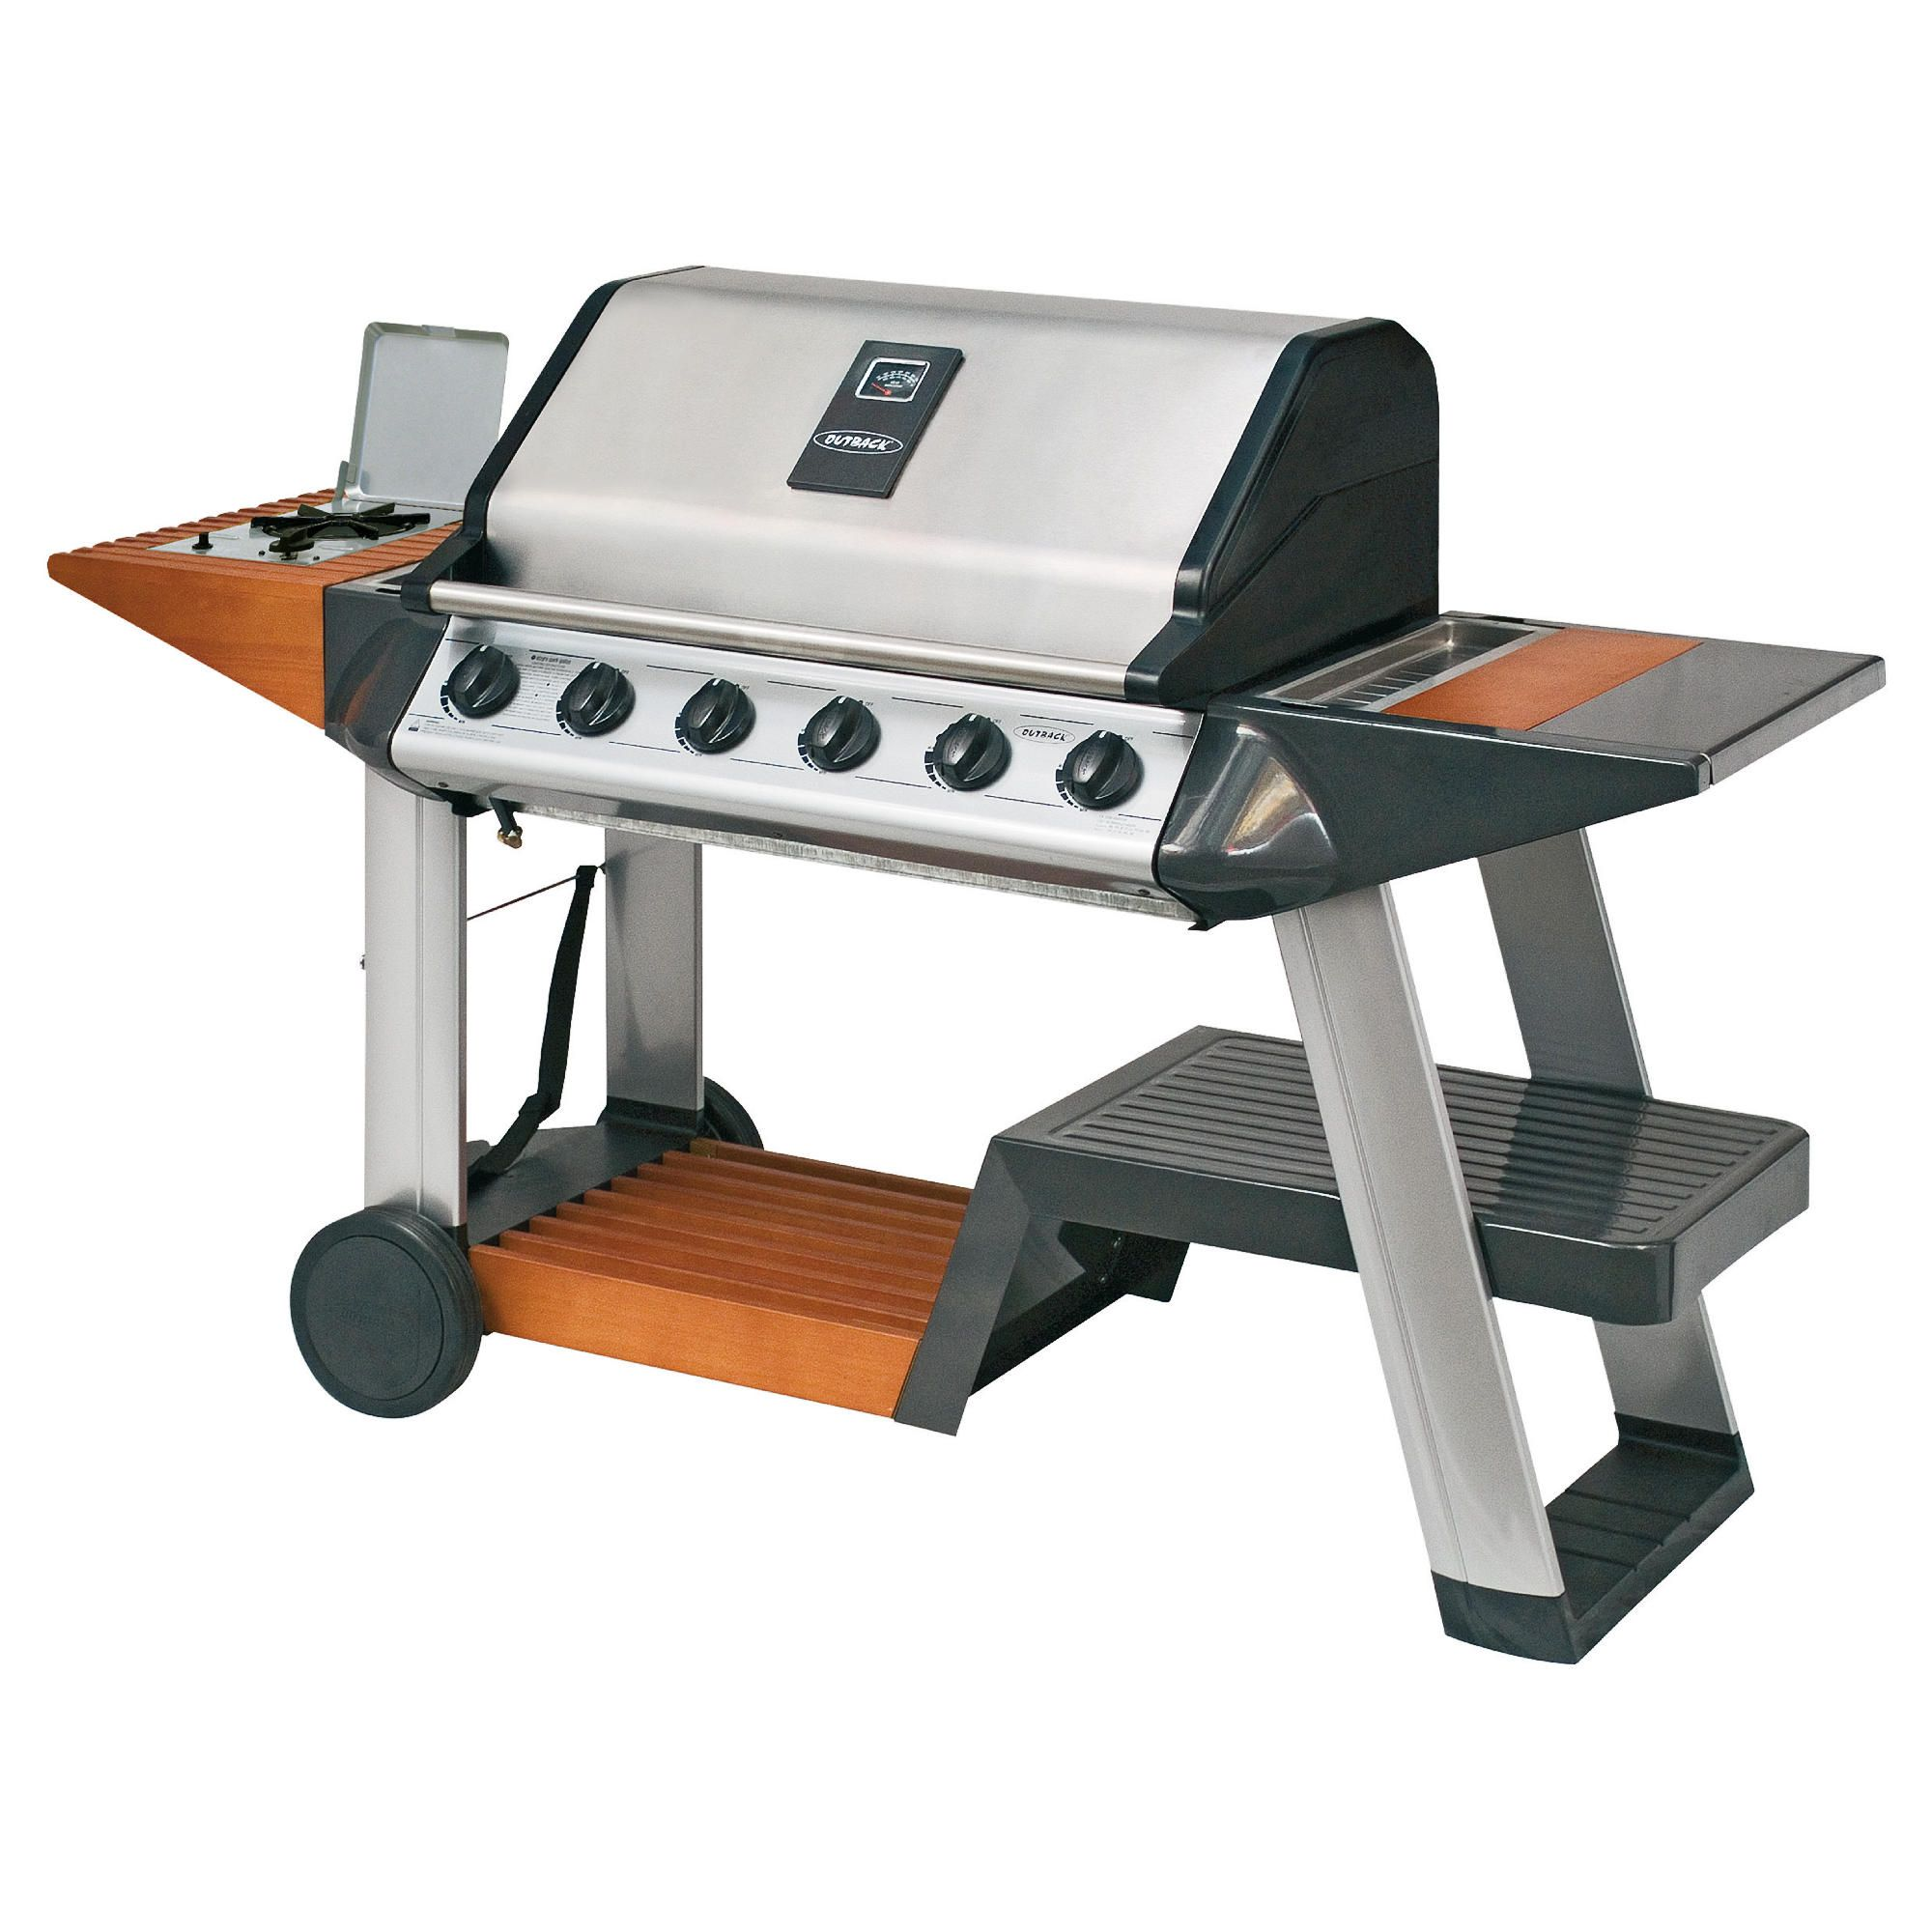 Outback Excelsior 6 Burner Gas BBQ with Cover at Tesco Direct